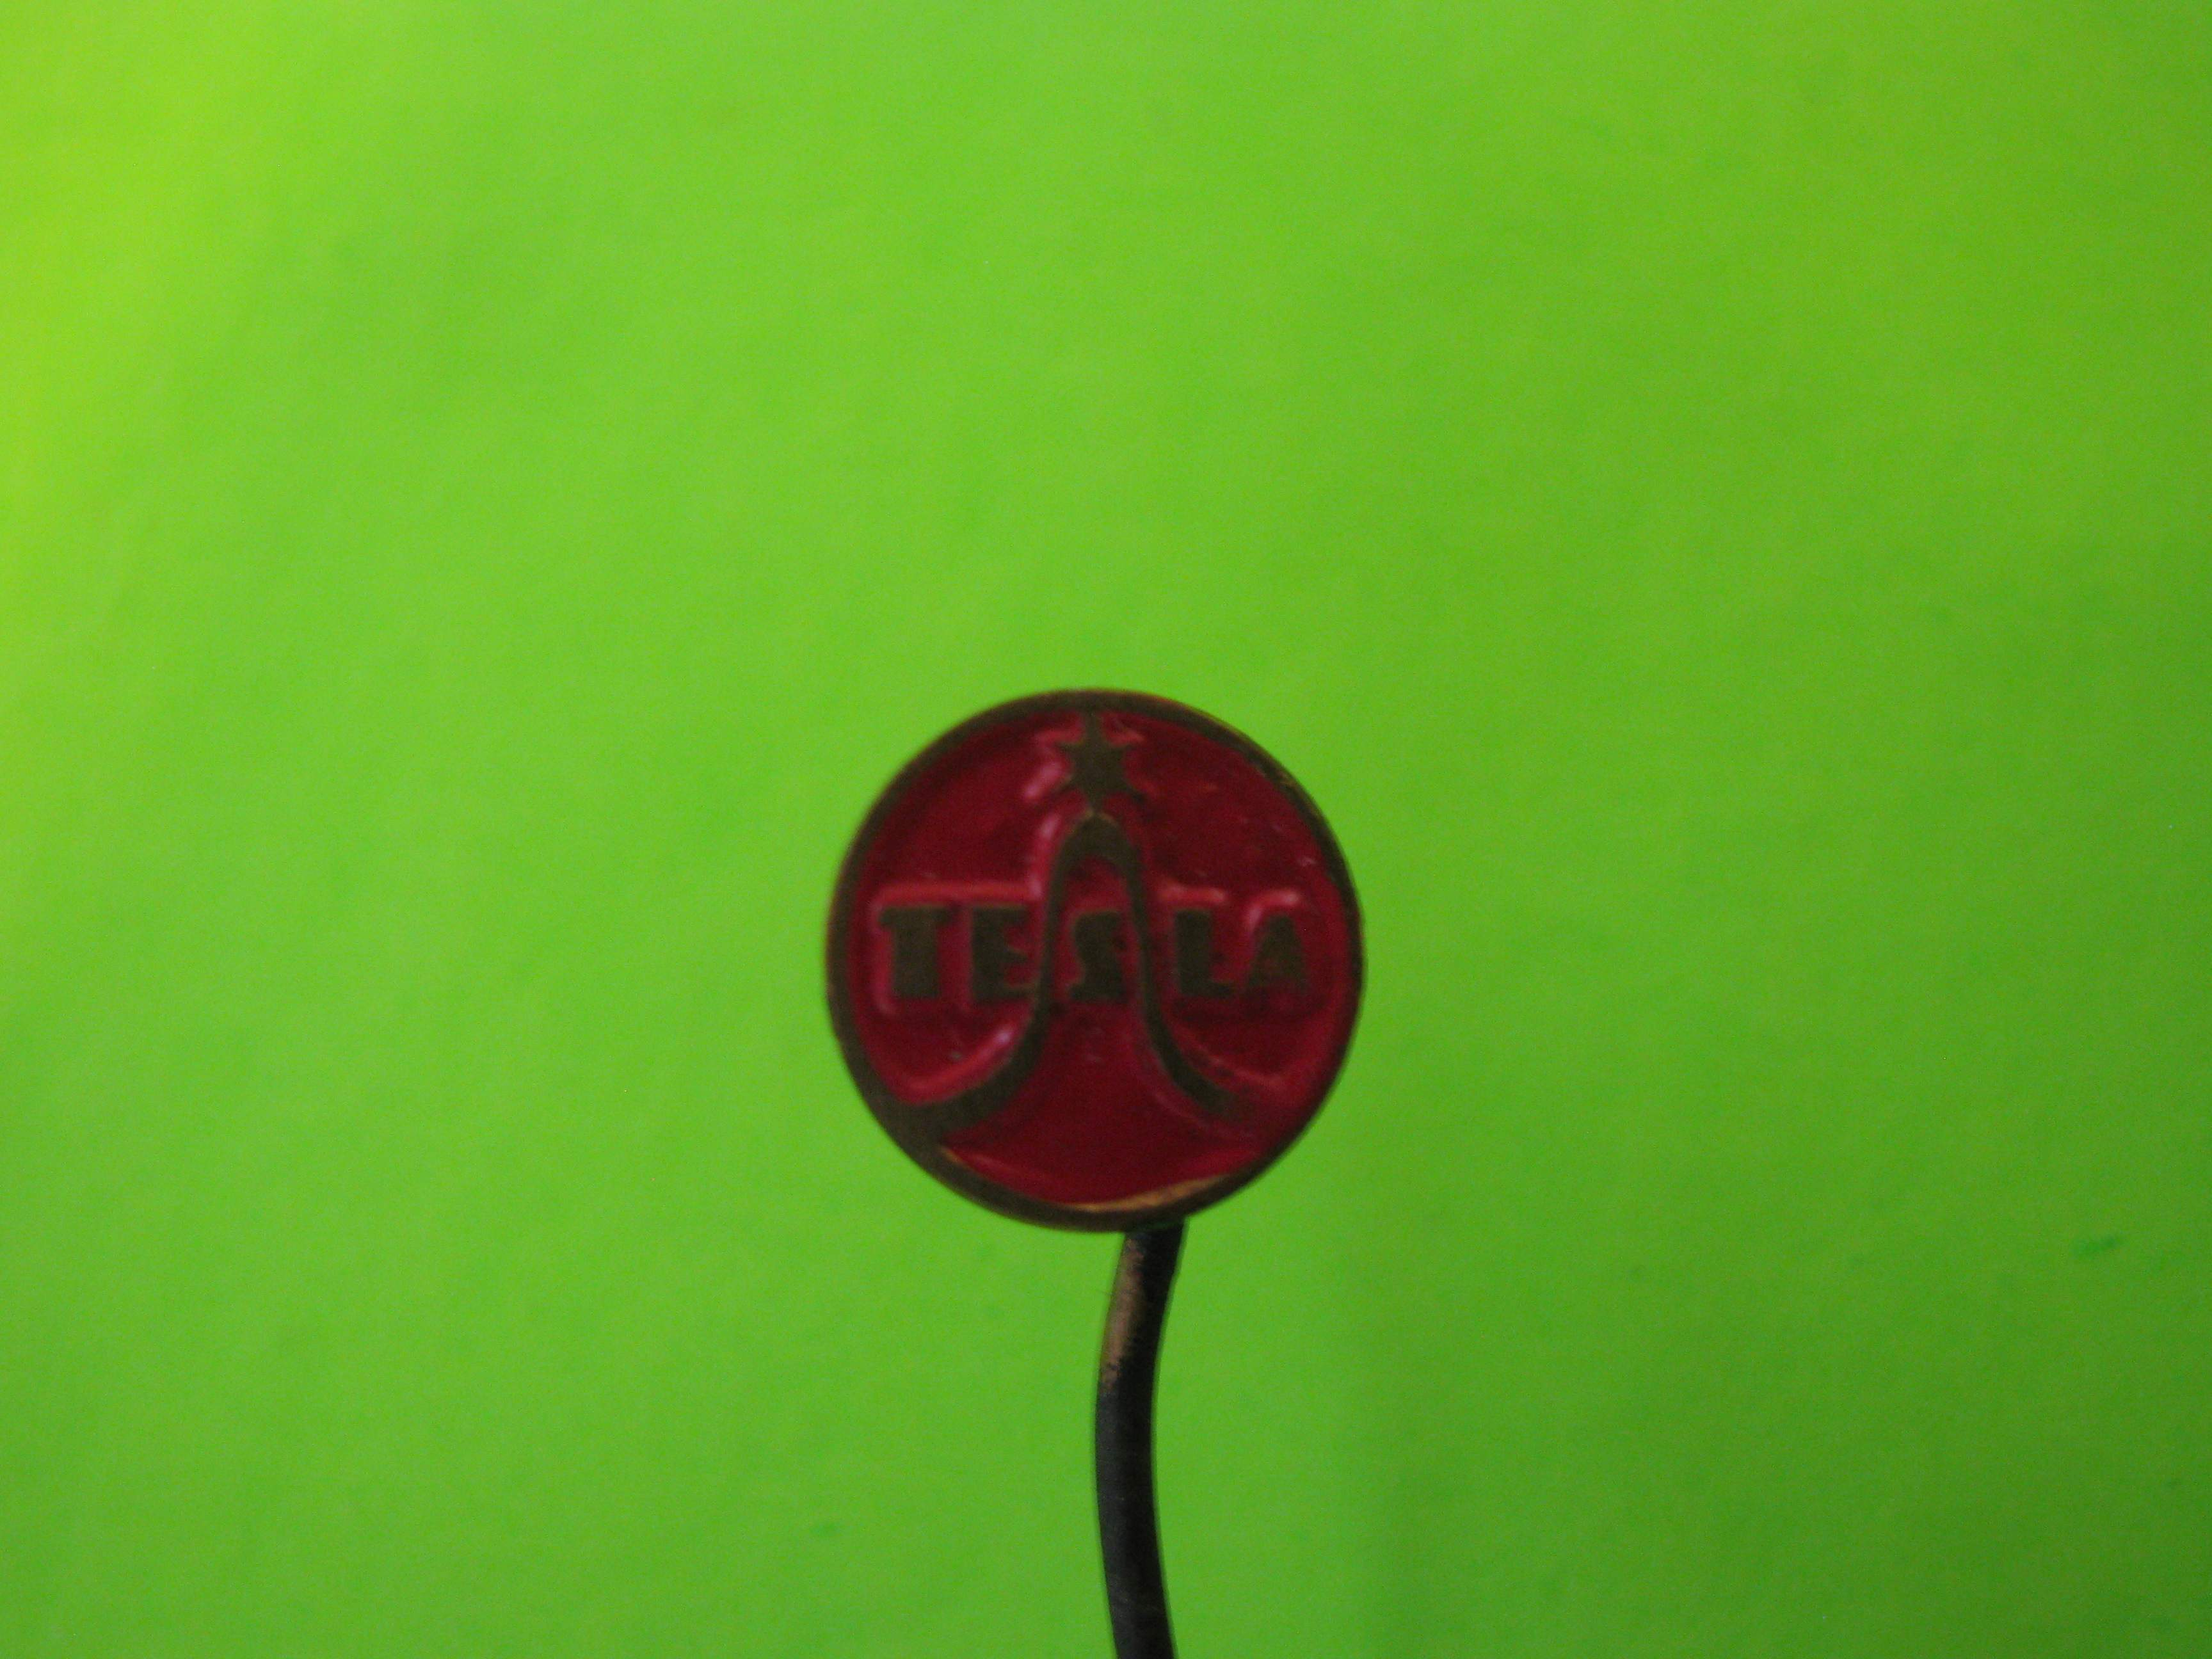 Vintage Tesla Stick Pin, Metal with Red Colored Background